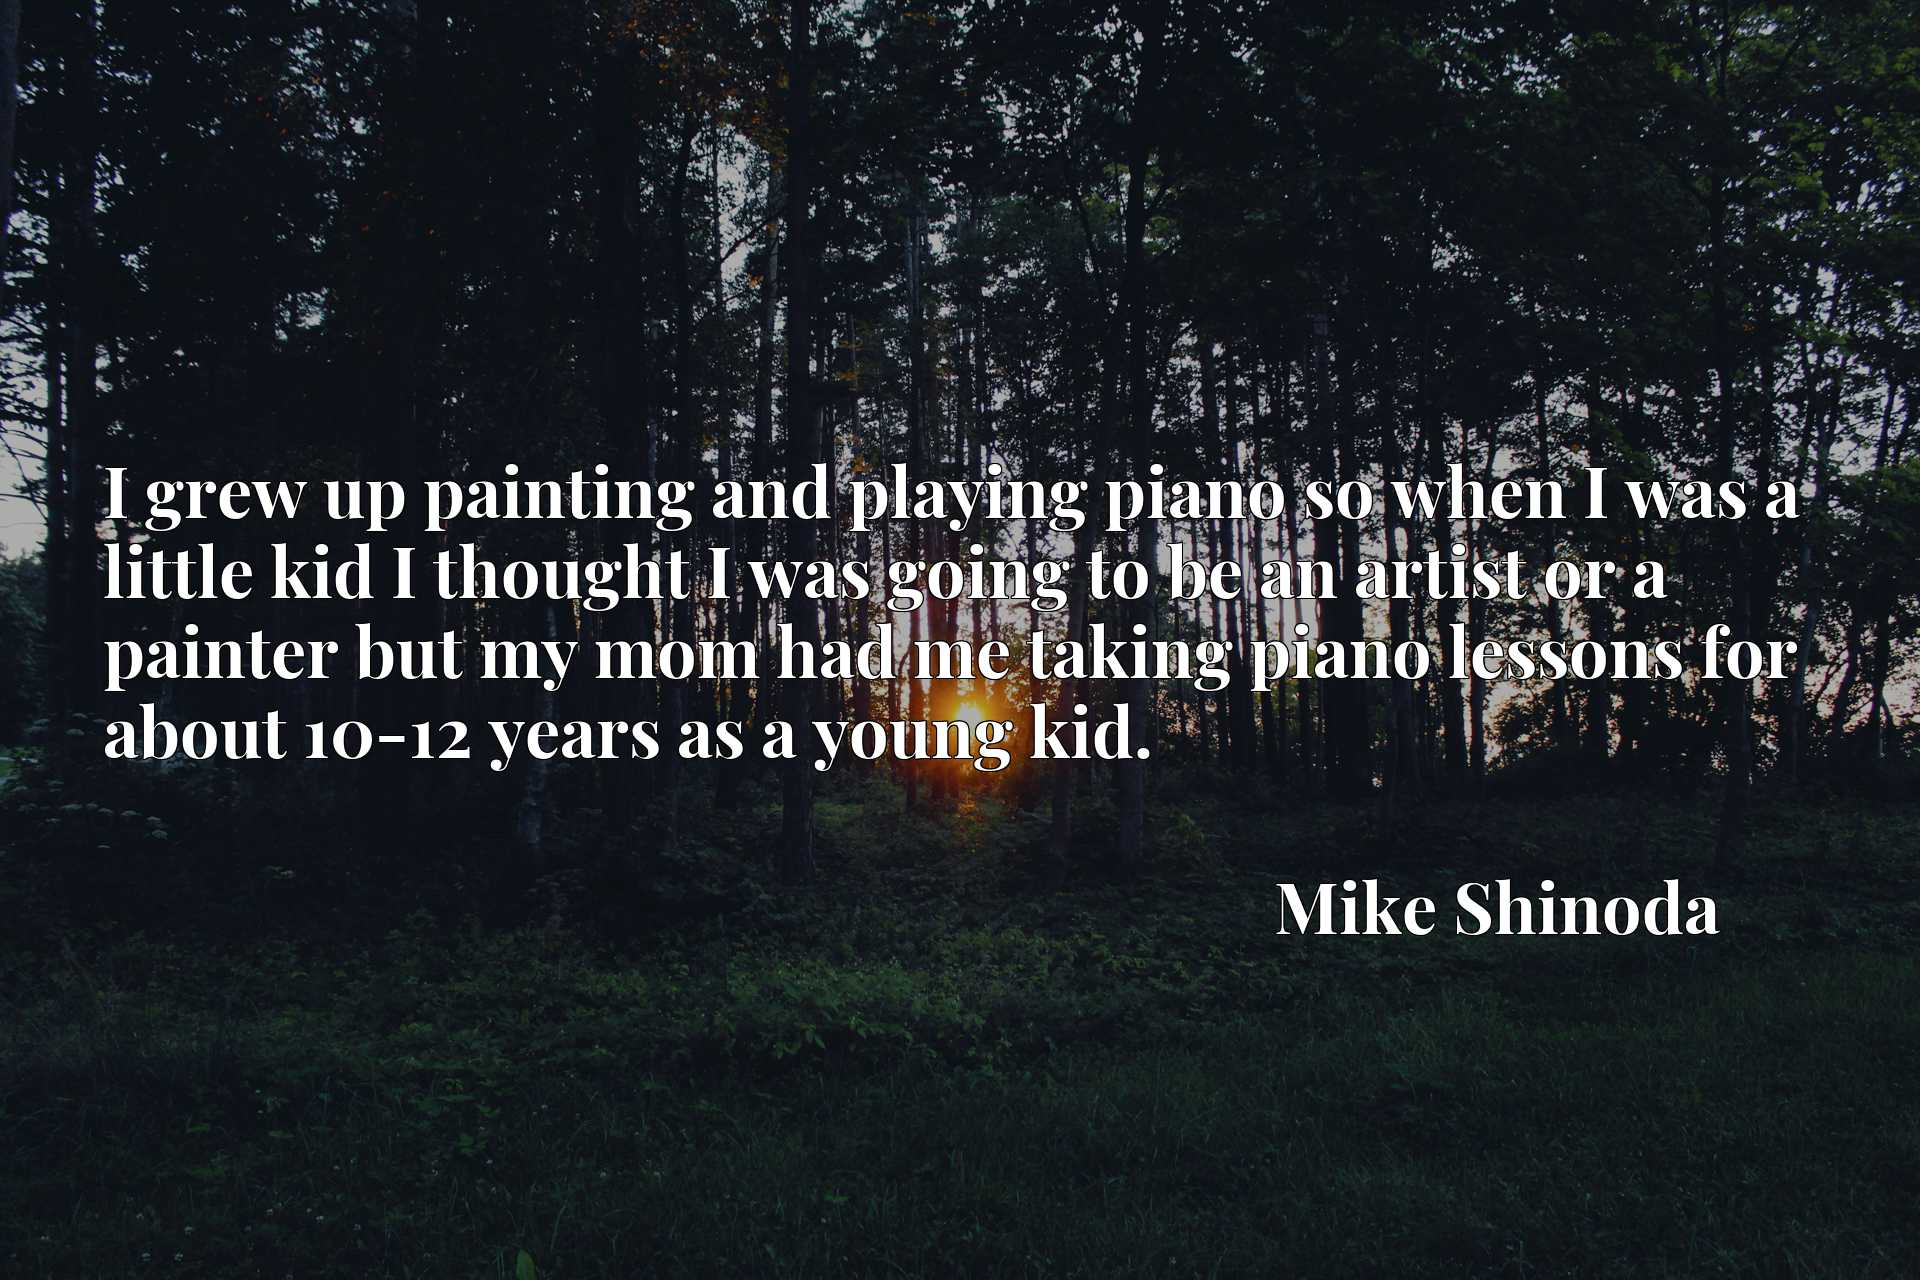 I grew up painting and playing piano so when I was a little kid I thought I was going to be an artist or a painter but my mom had me taking piano lessons for about 10-12 years as a young kid.